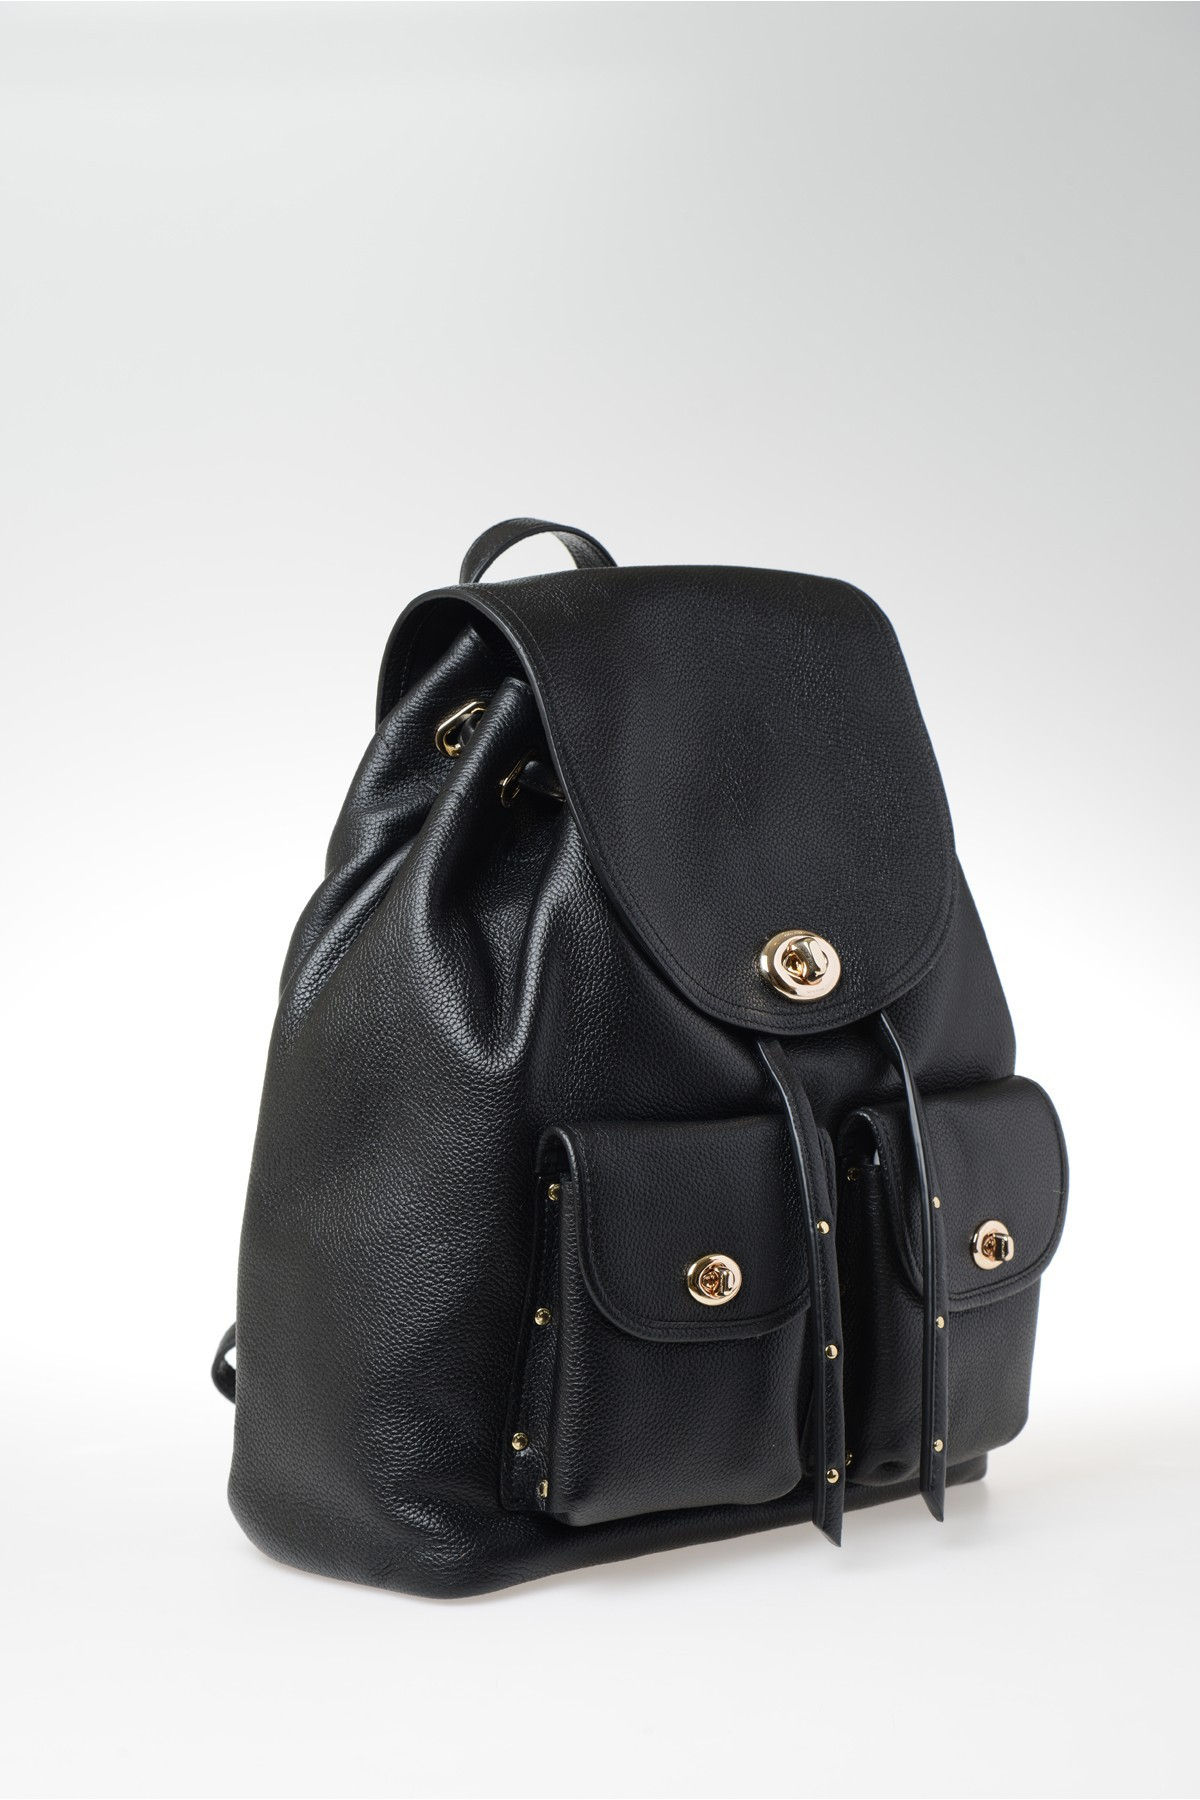 Coach Leather Backpack With External Pockets in Black | Lyst